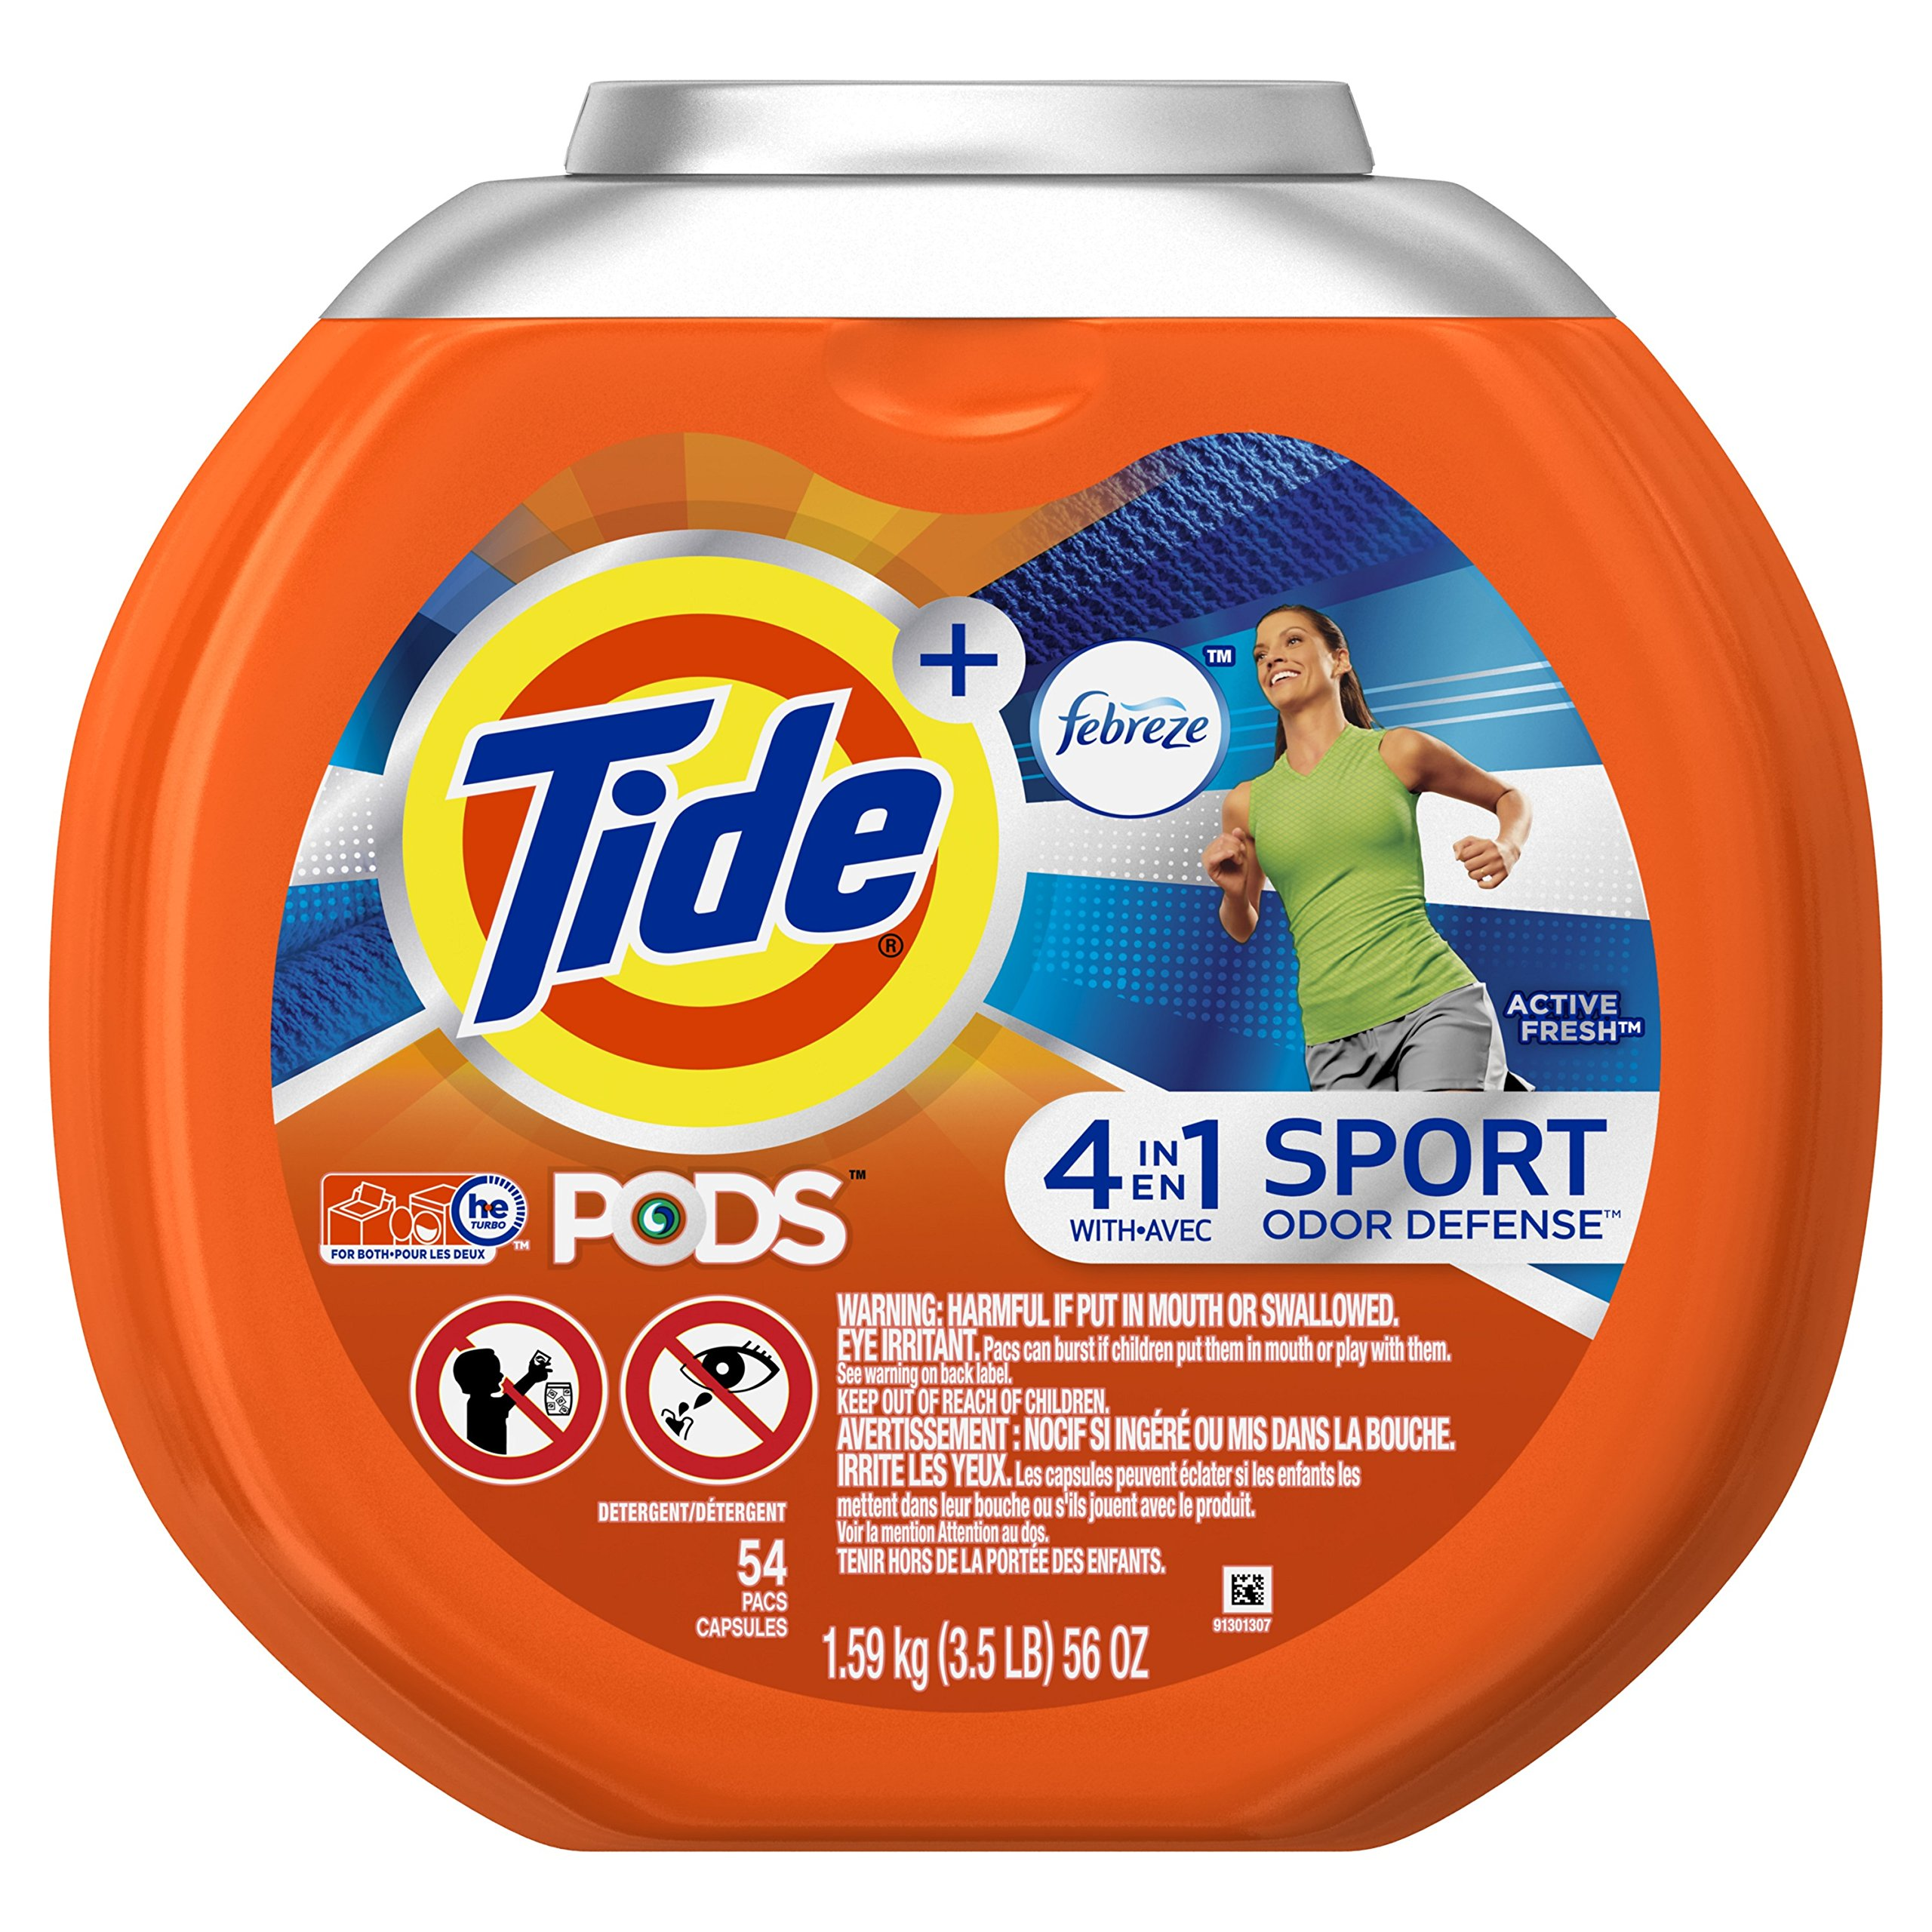 Tide PODS Plus Febreze Sport Odor Defense Laundry Pacs, Active Fresh Scent, 54 Count, Designed For Regular and HE Washers (Packaging May Vary) by Tide